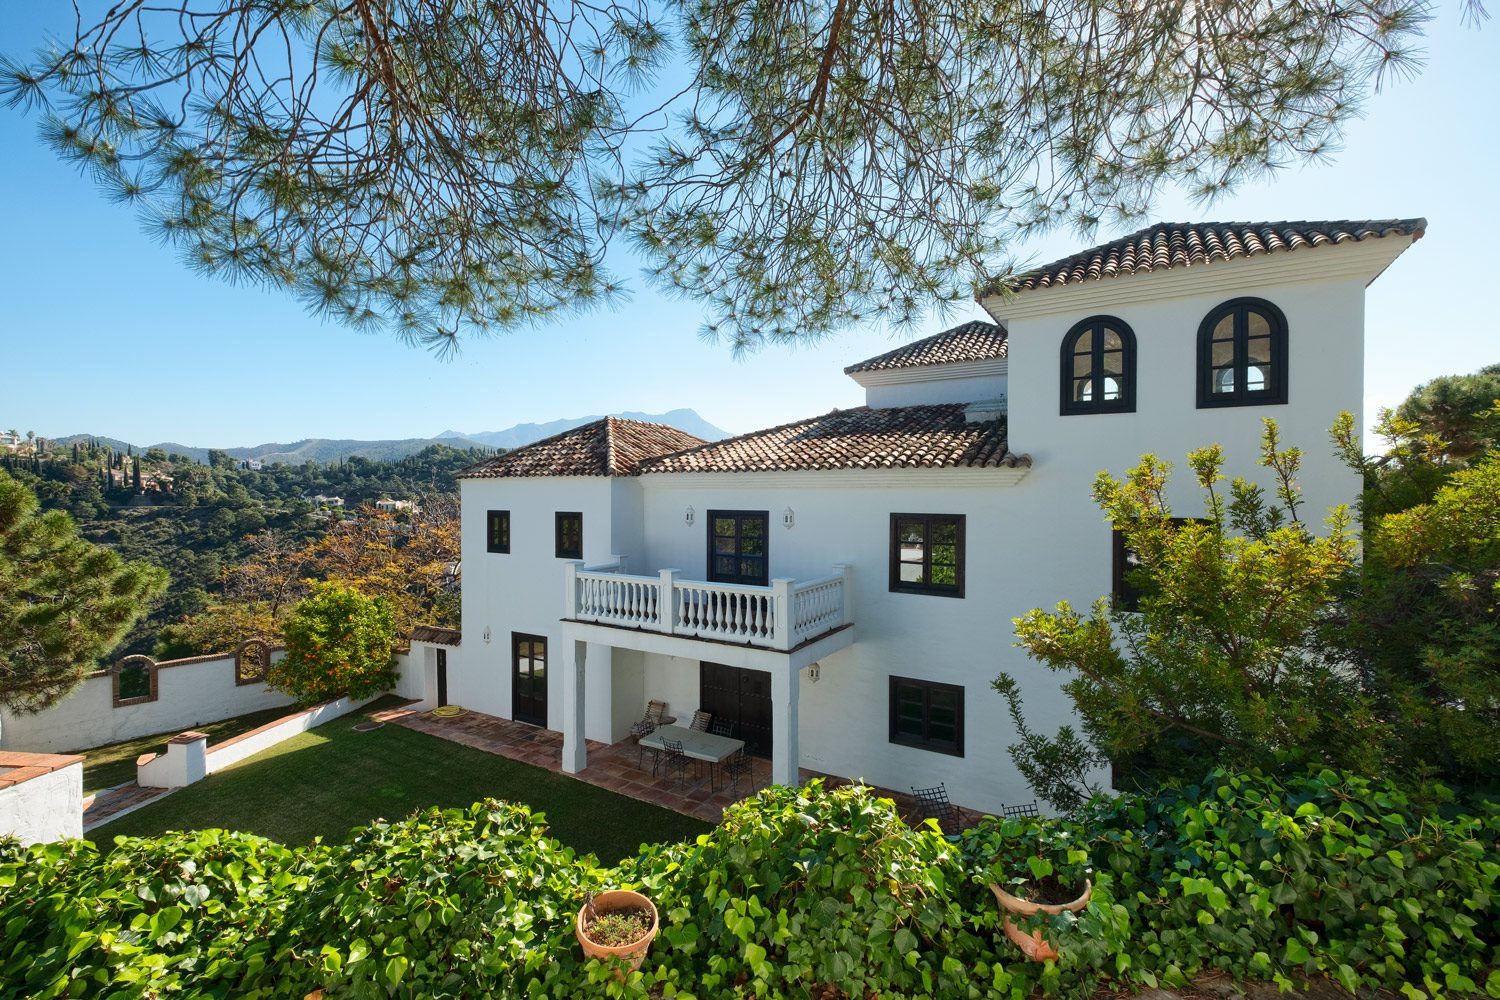 Detached Cortijo Style Villa